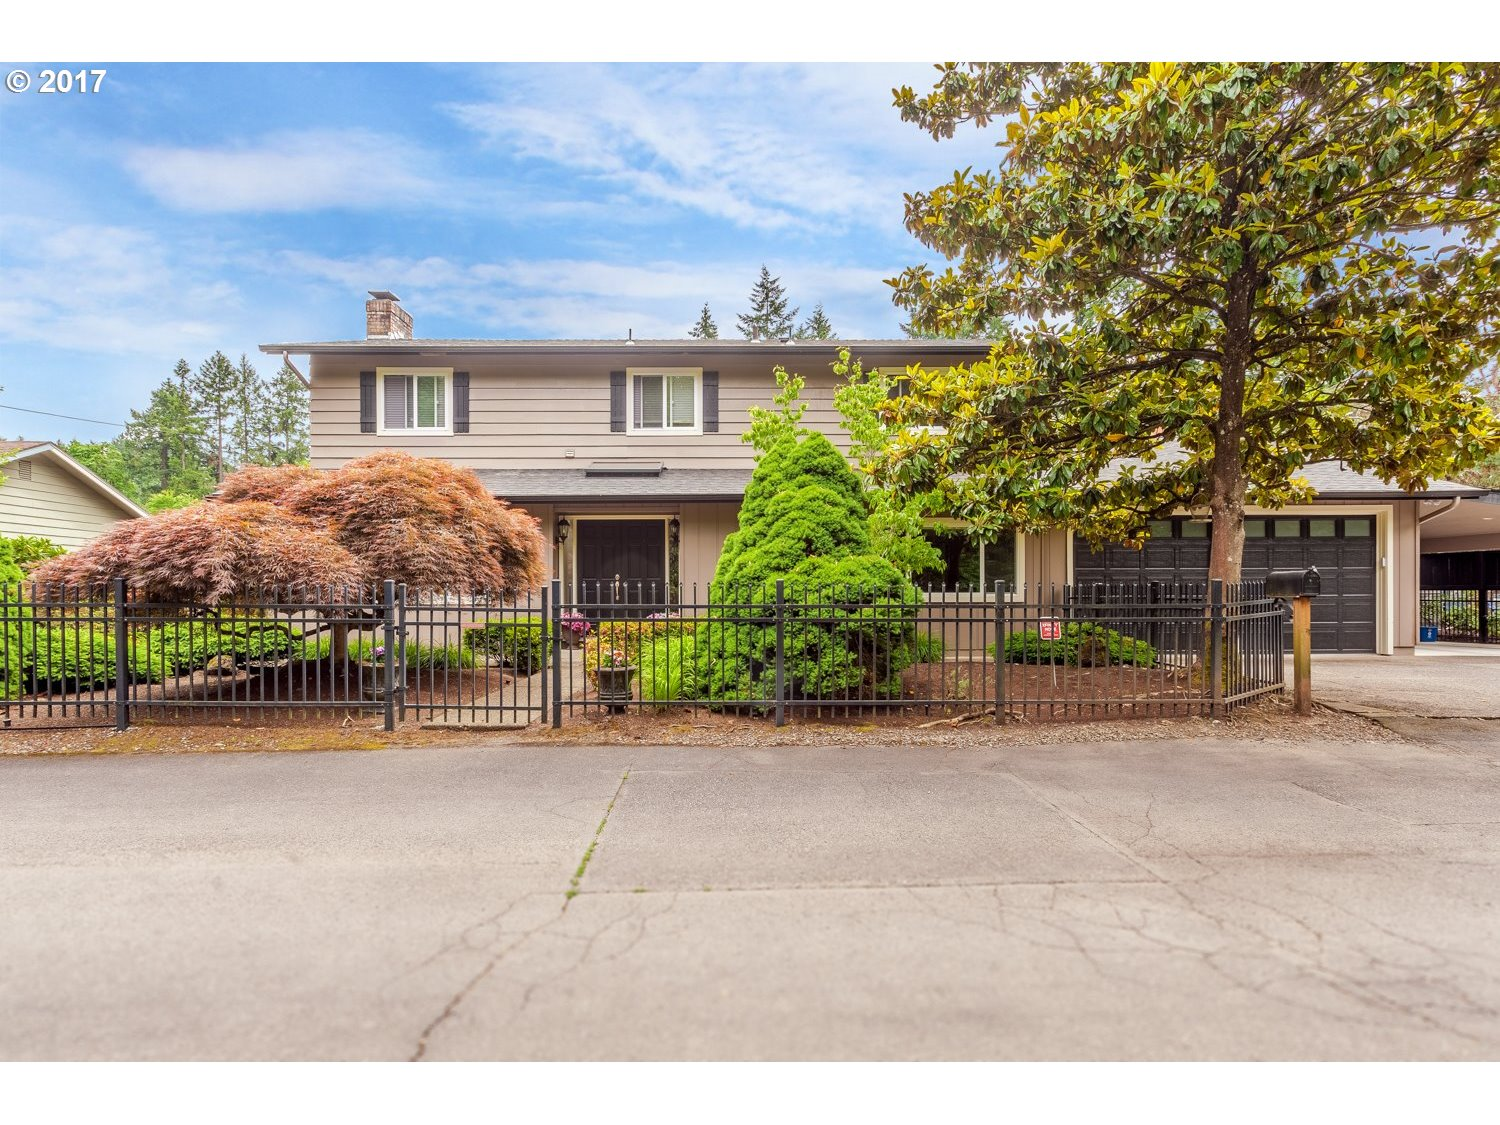 830 CABANA LN, Lake Oswego, OR 97034